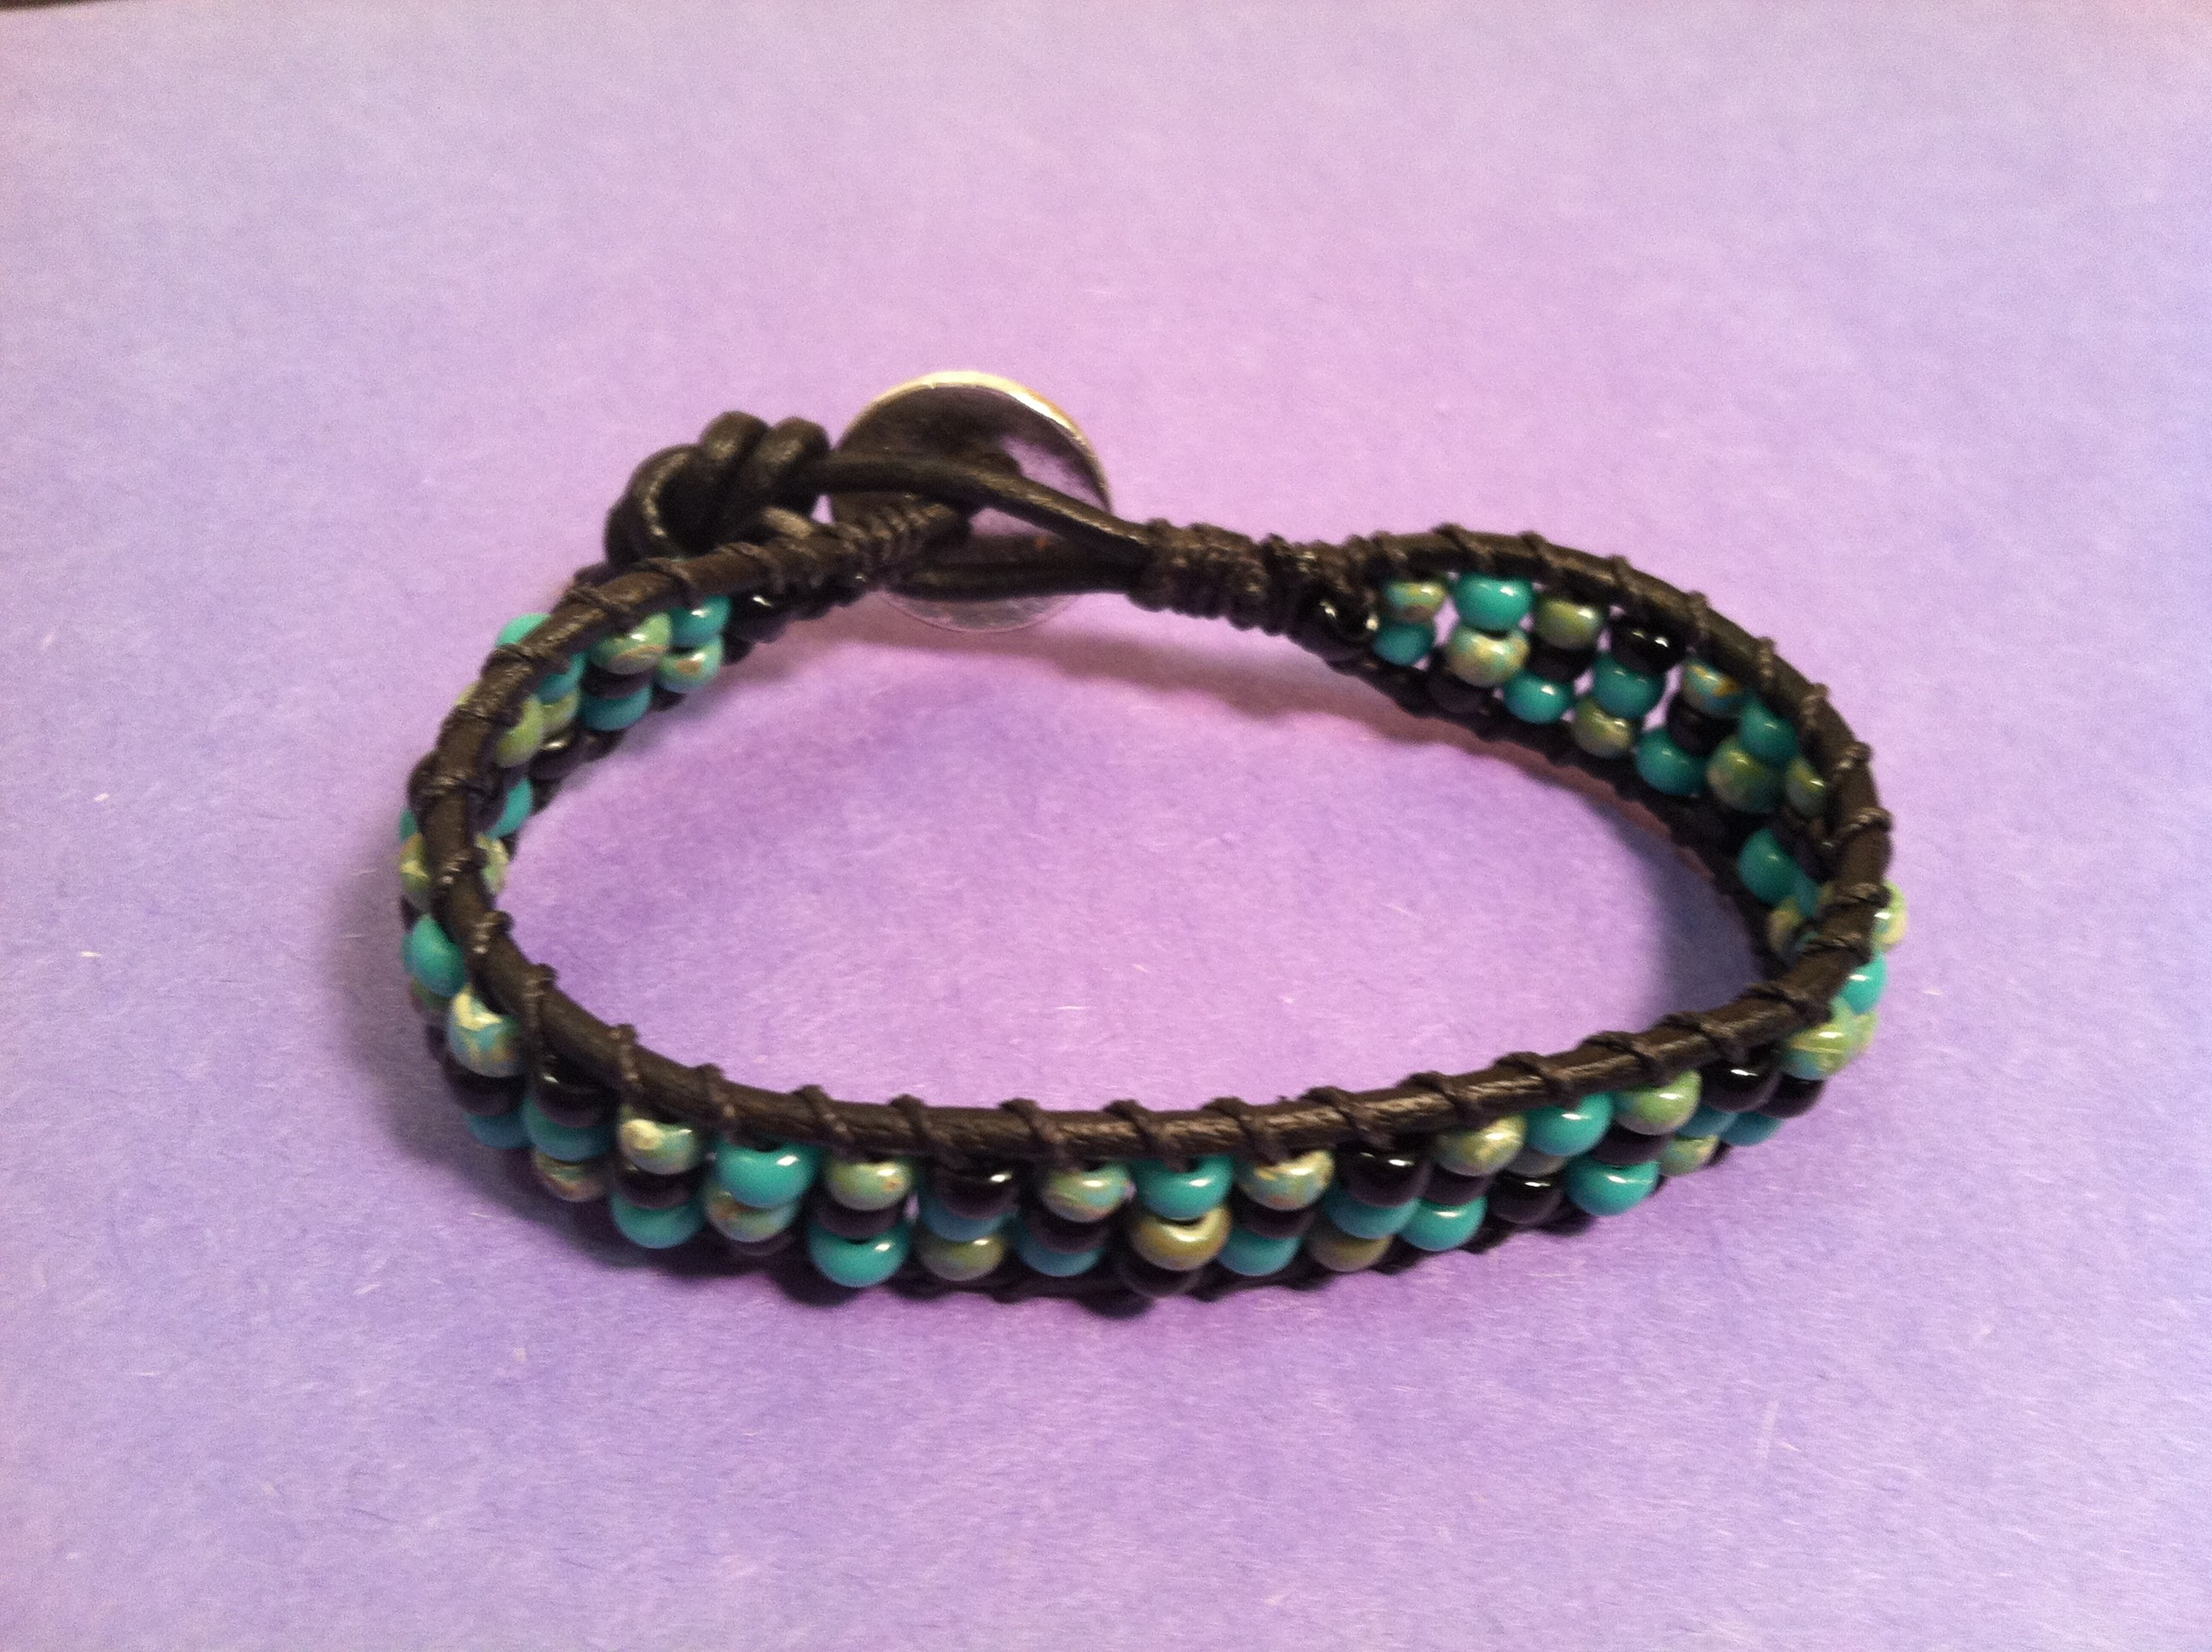 Cleveland Rocks and Beads - Classes